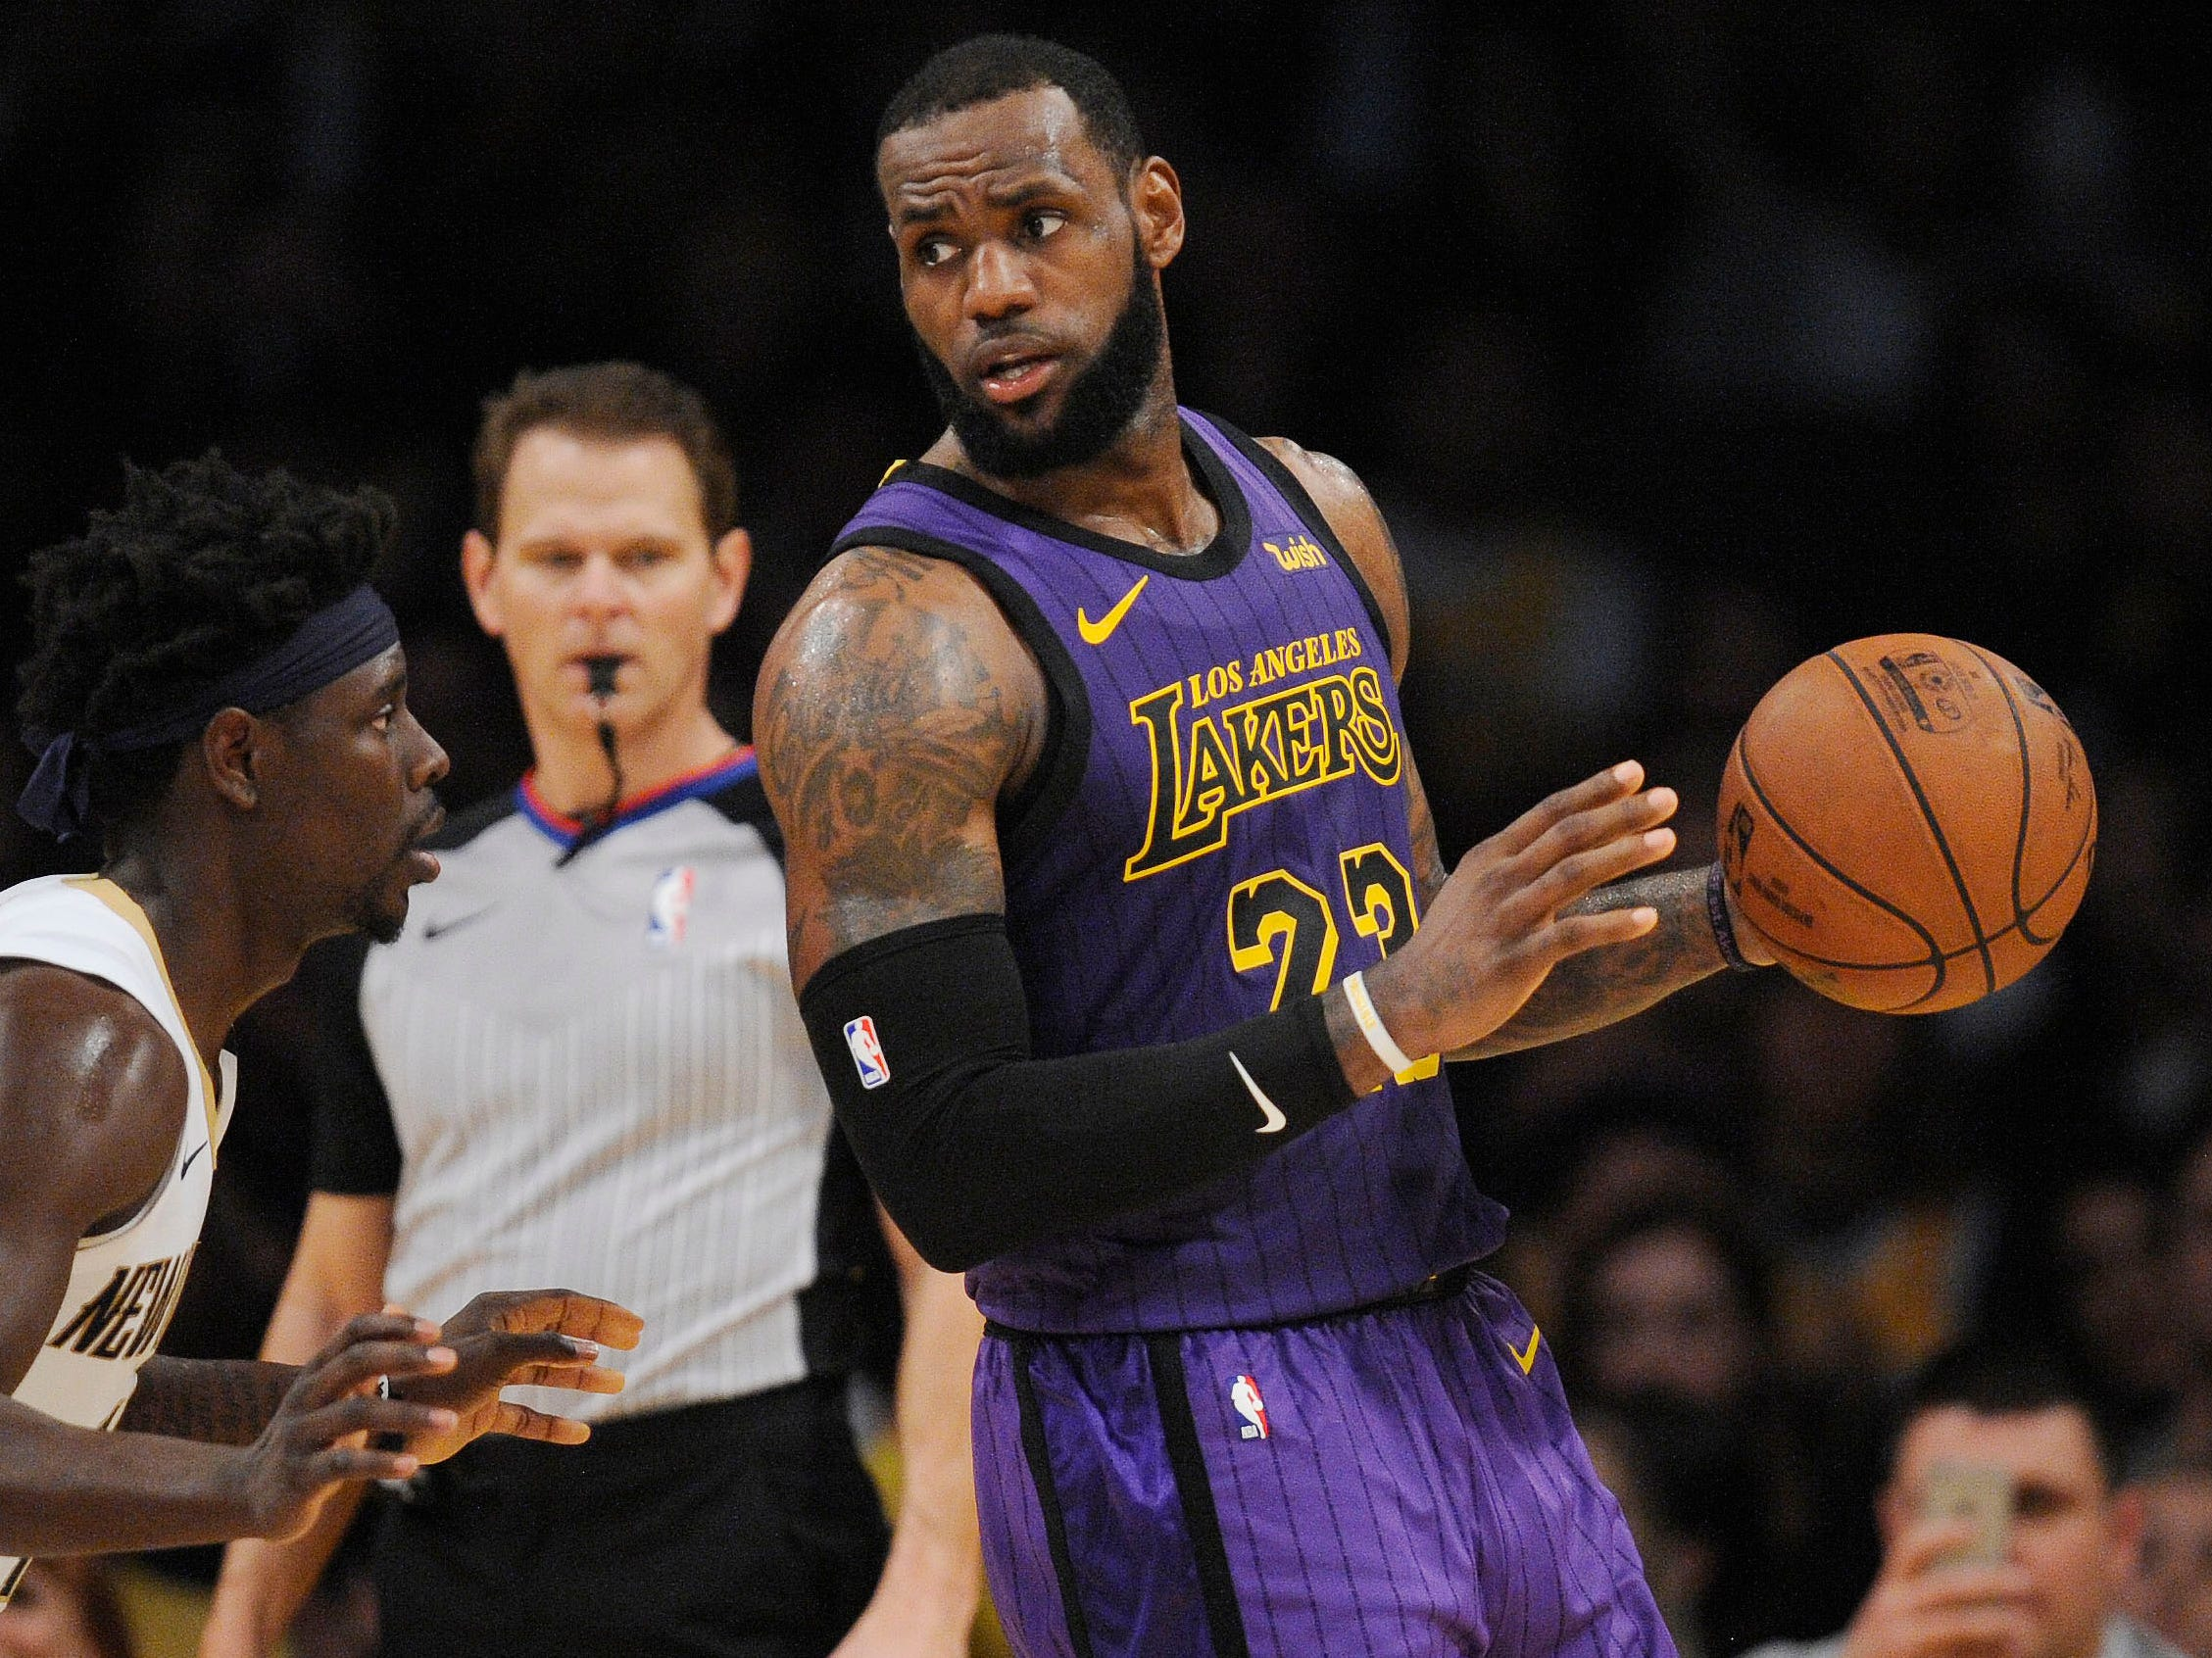 32. LeBron James, Lakers (Dec. 21): 22 points, 14 assists, 12 rebounds in 112-104 win over Pelicans (third of season).